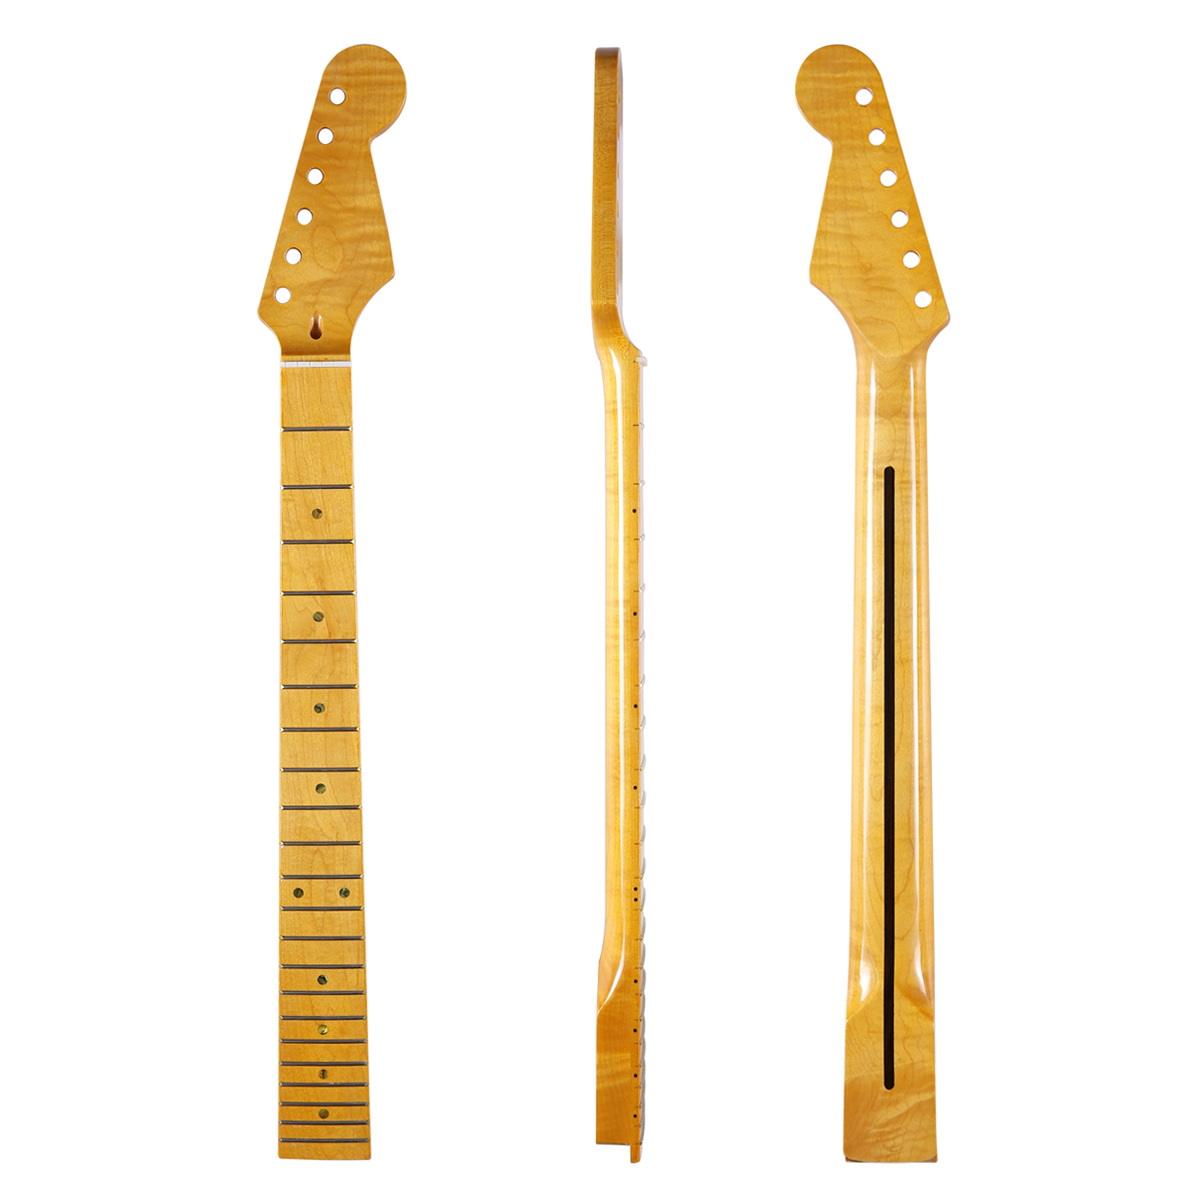 High quality 22 Fret Glossy Canadian Tiger Flame Maple Strat Guitar Neck with Abalone Shell Inlay Bone Nut for Stratocaster dopro 22 fret canadian highly tiger flamed maple strat neck with rosewood fingerboard abalone inlay bone nut for stratocaster